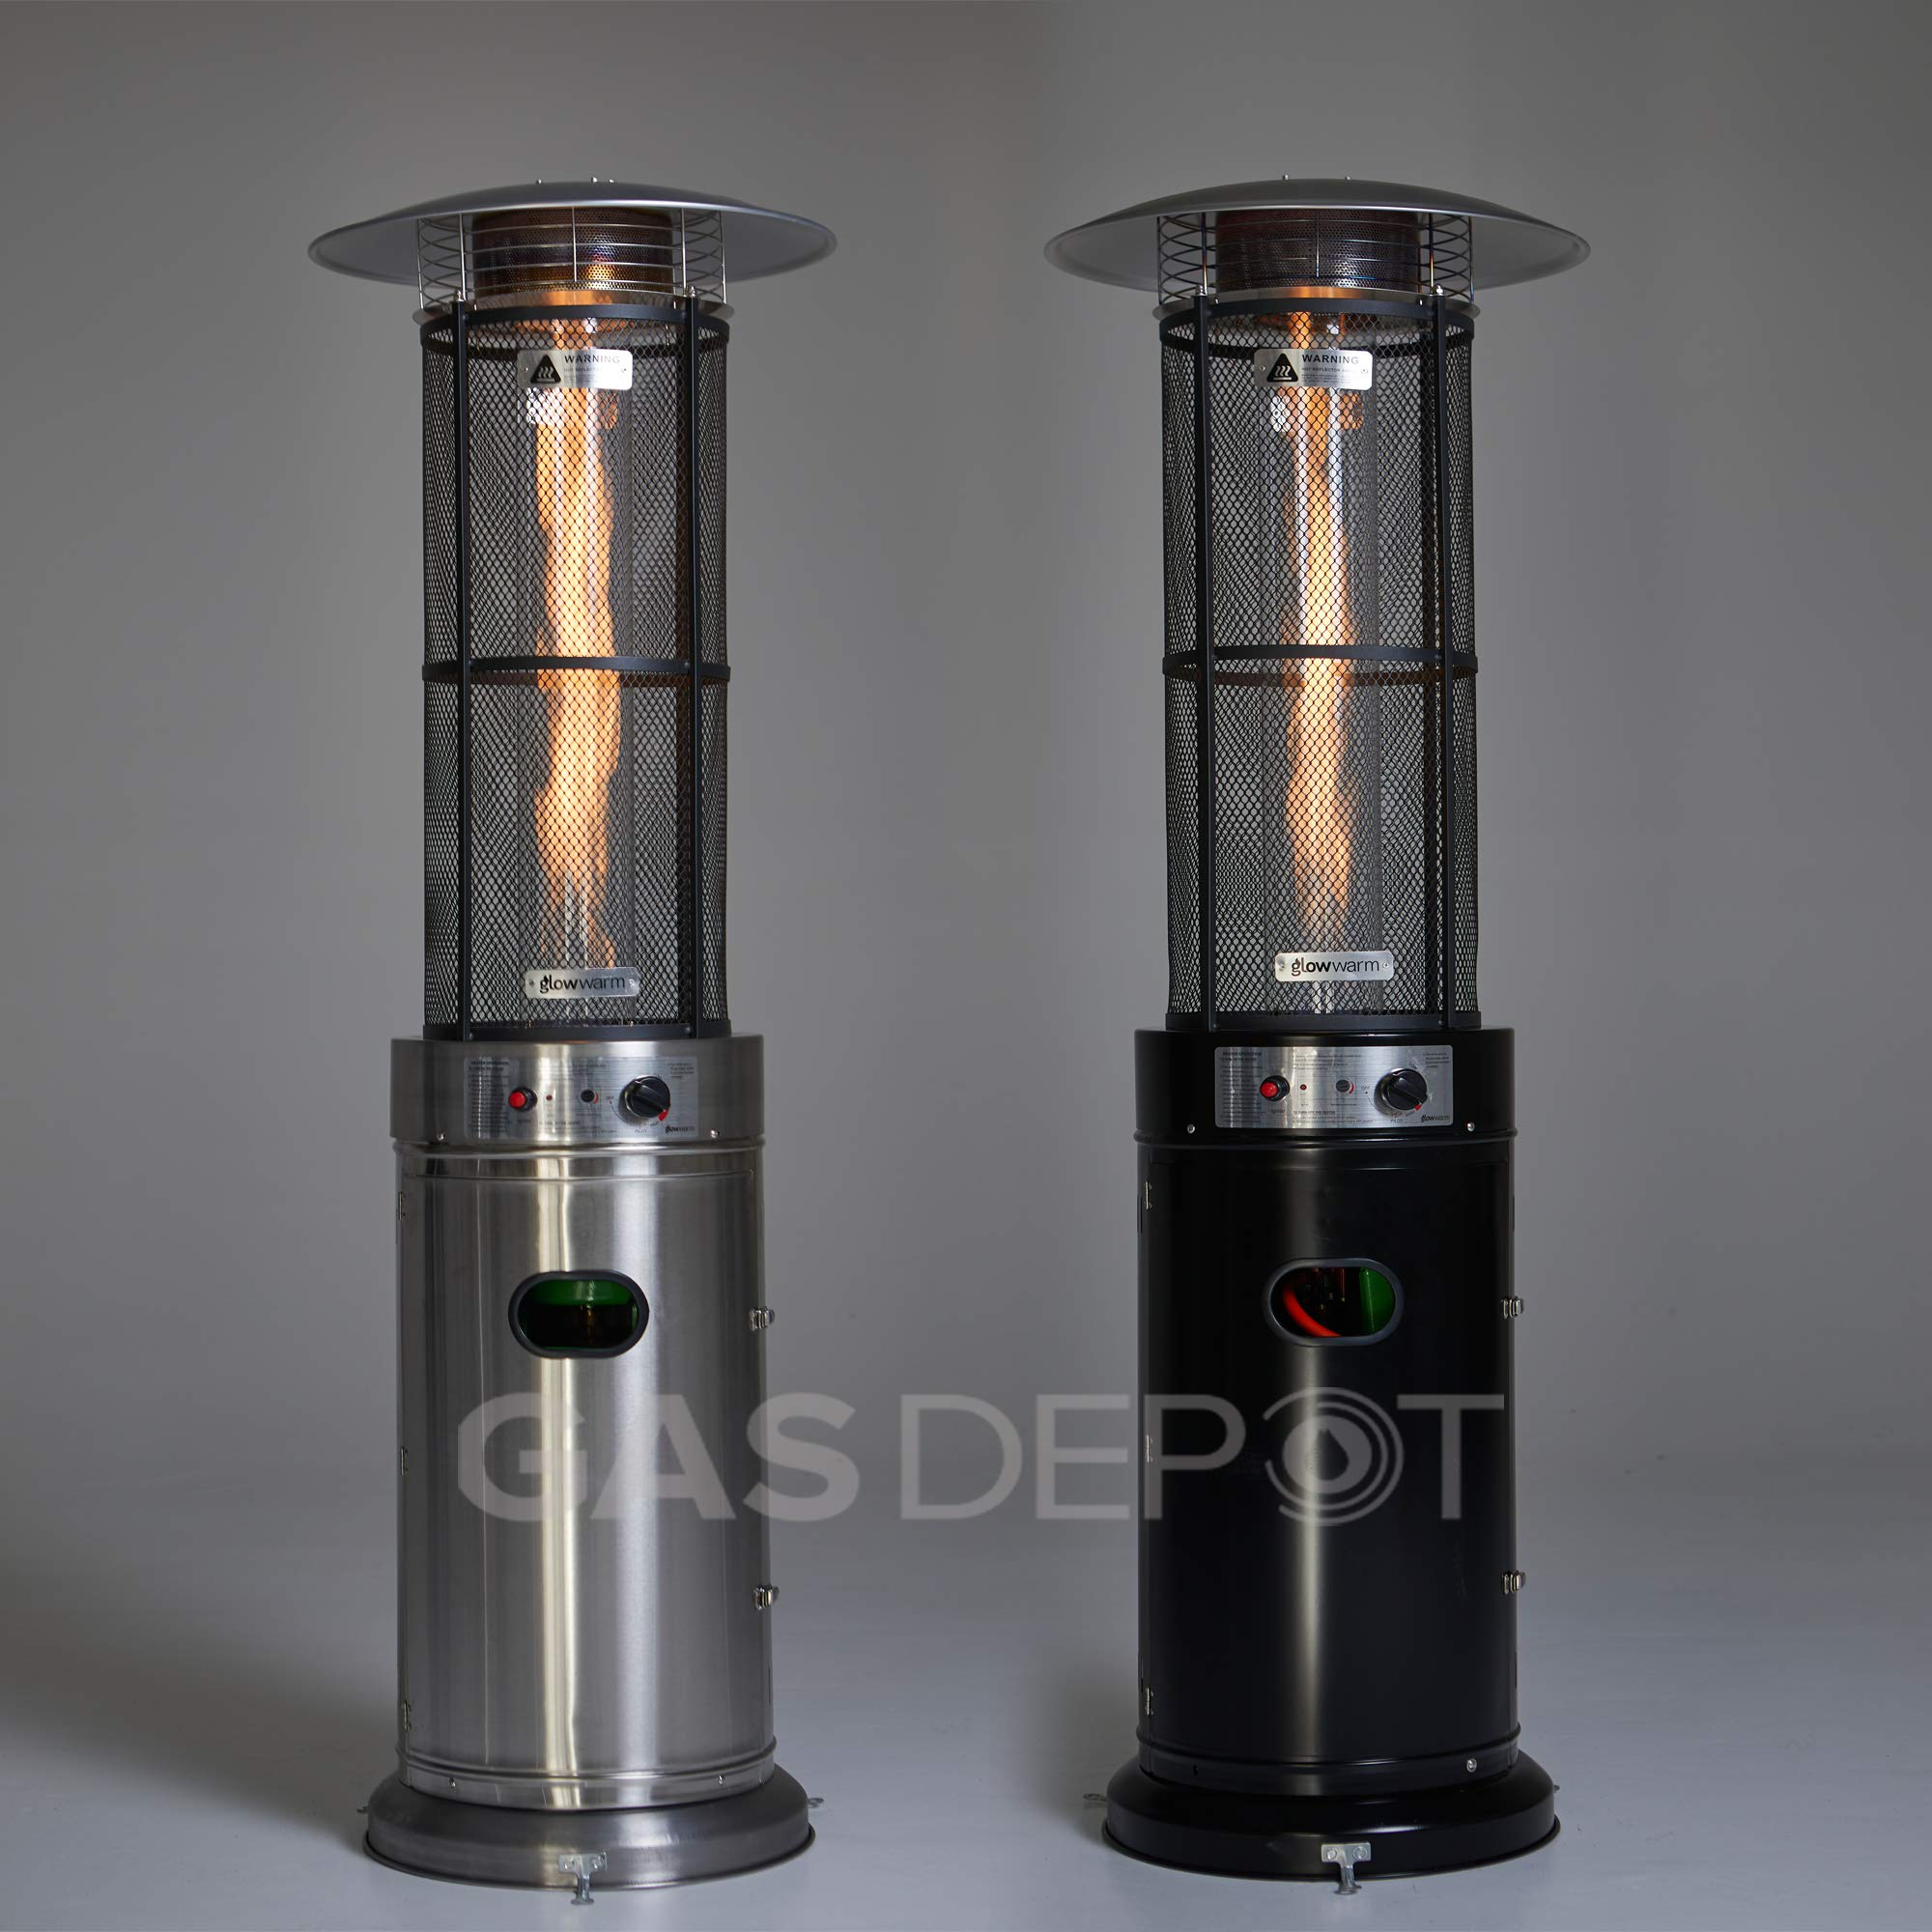 Real Glow 15 KW Flame Patio Heater with